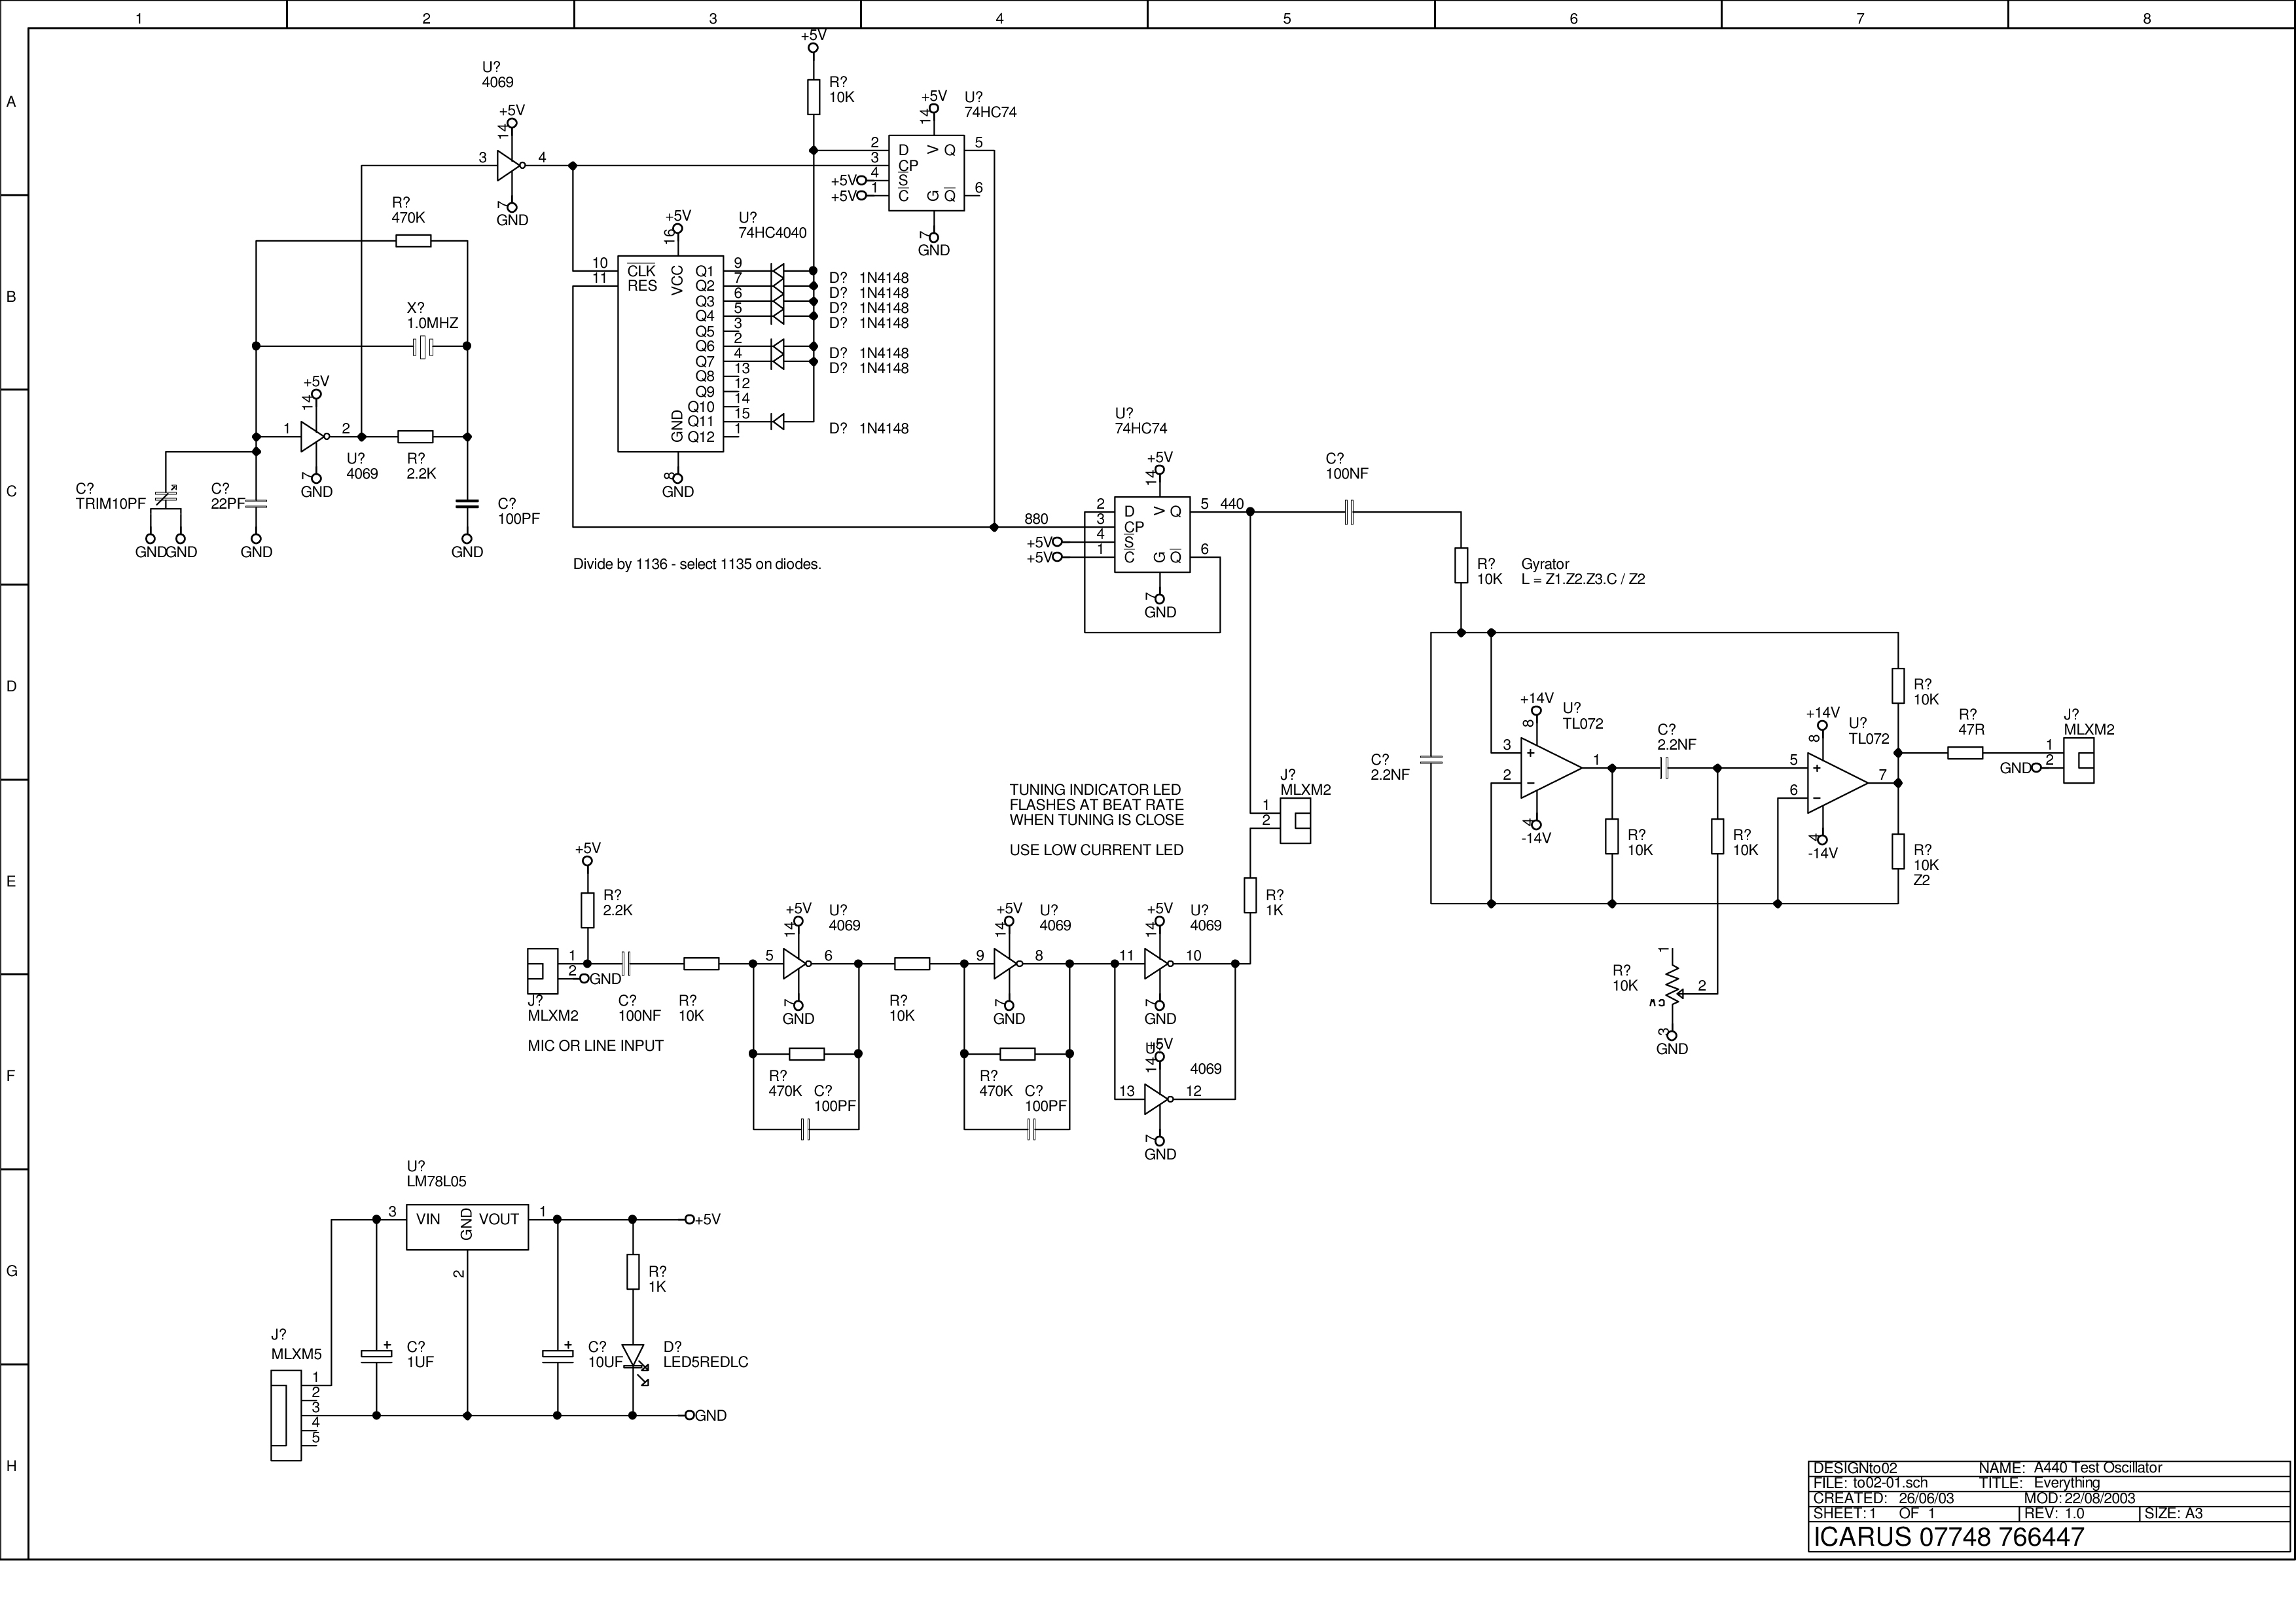 New Circuits Page 23 Lm324 Application Circuit Analysis In The Of Directflow A 440o Scillator Version X